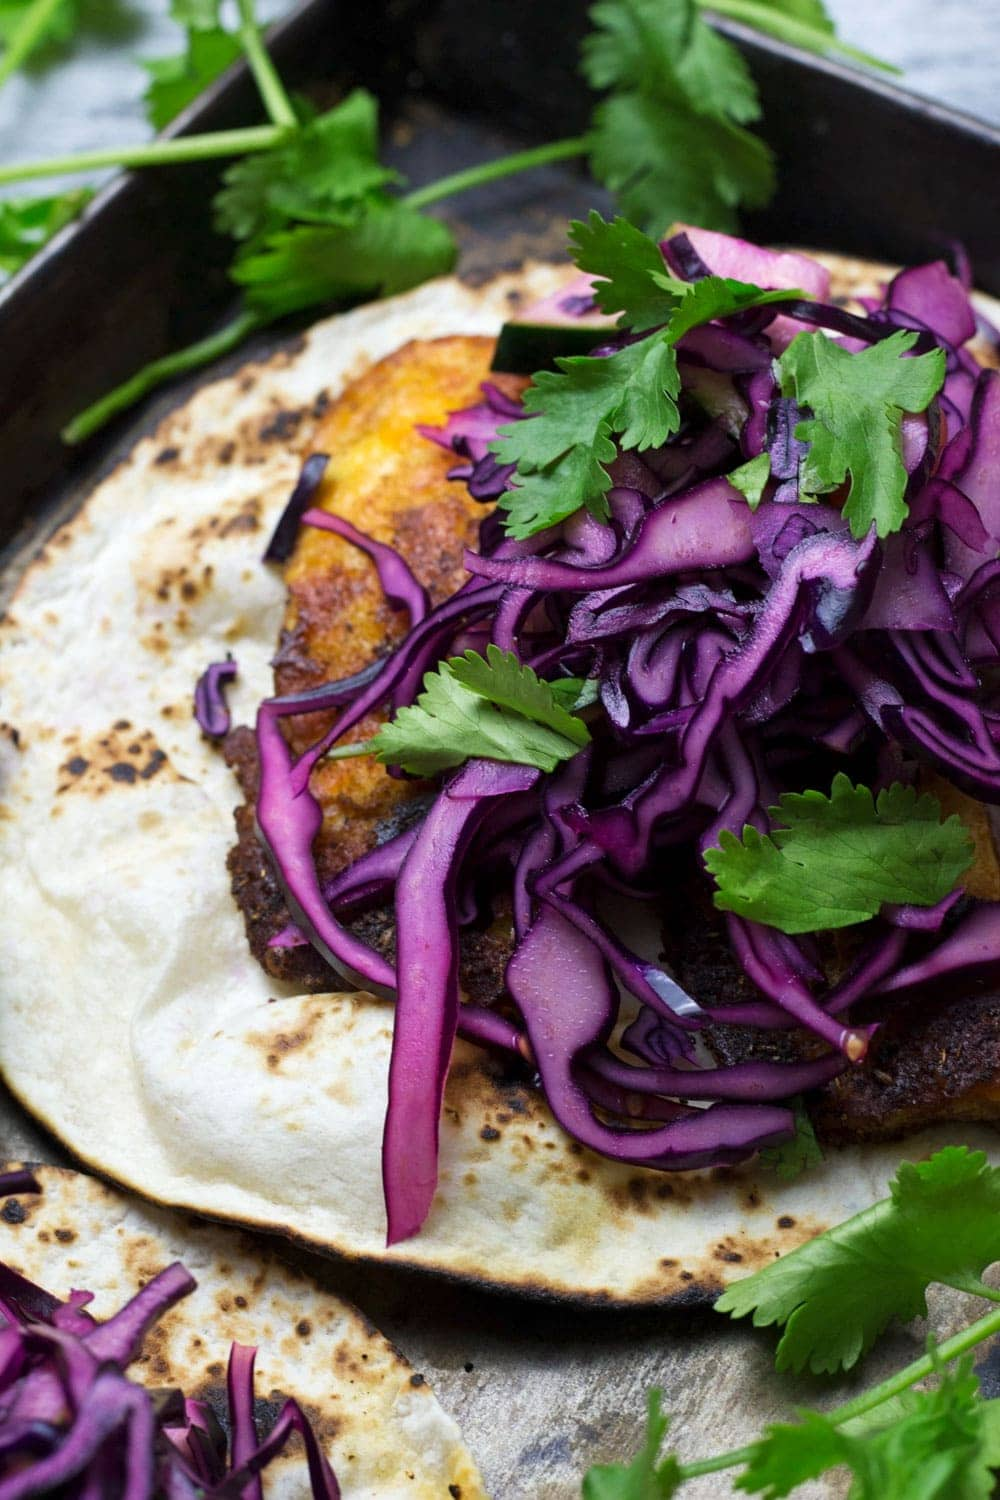 These halloumi tacos are beautifully spiced and topped with a fresh and healthy cabbage slaw. An ideal vegetarian Mexican dinner!